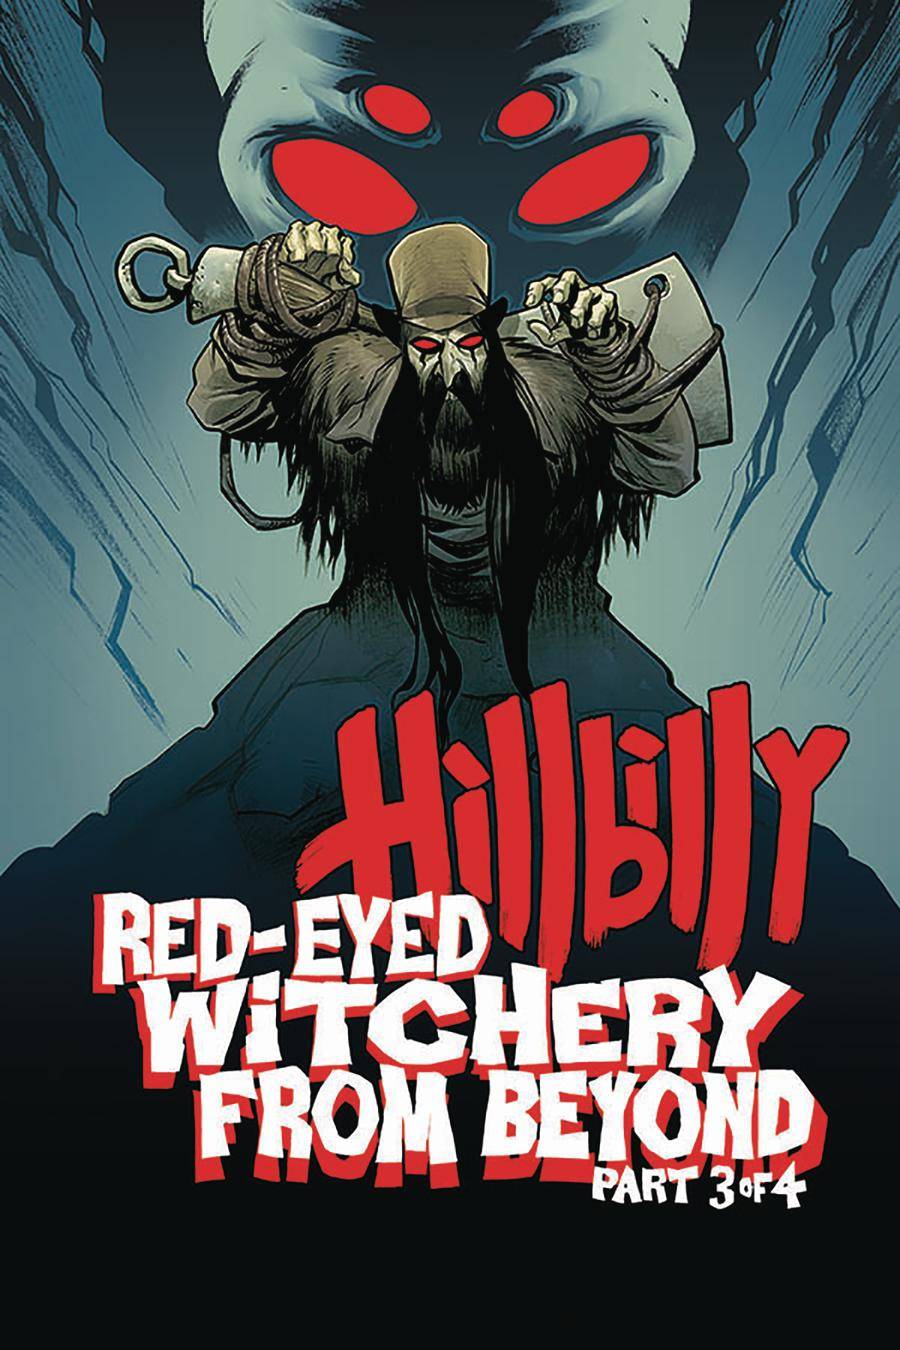 Hillbilly Red-Eyed Witchery From Beyond #3